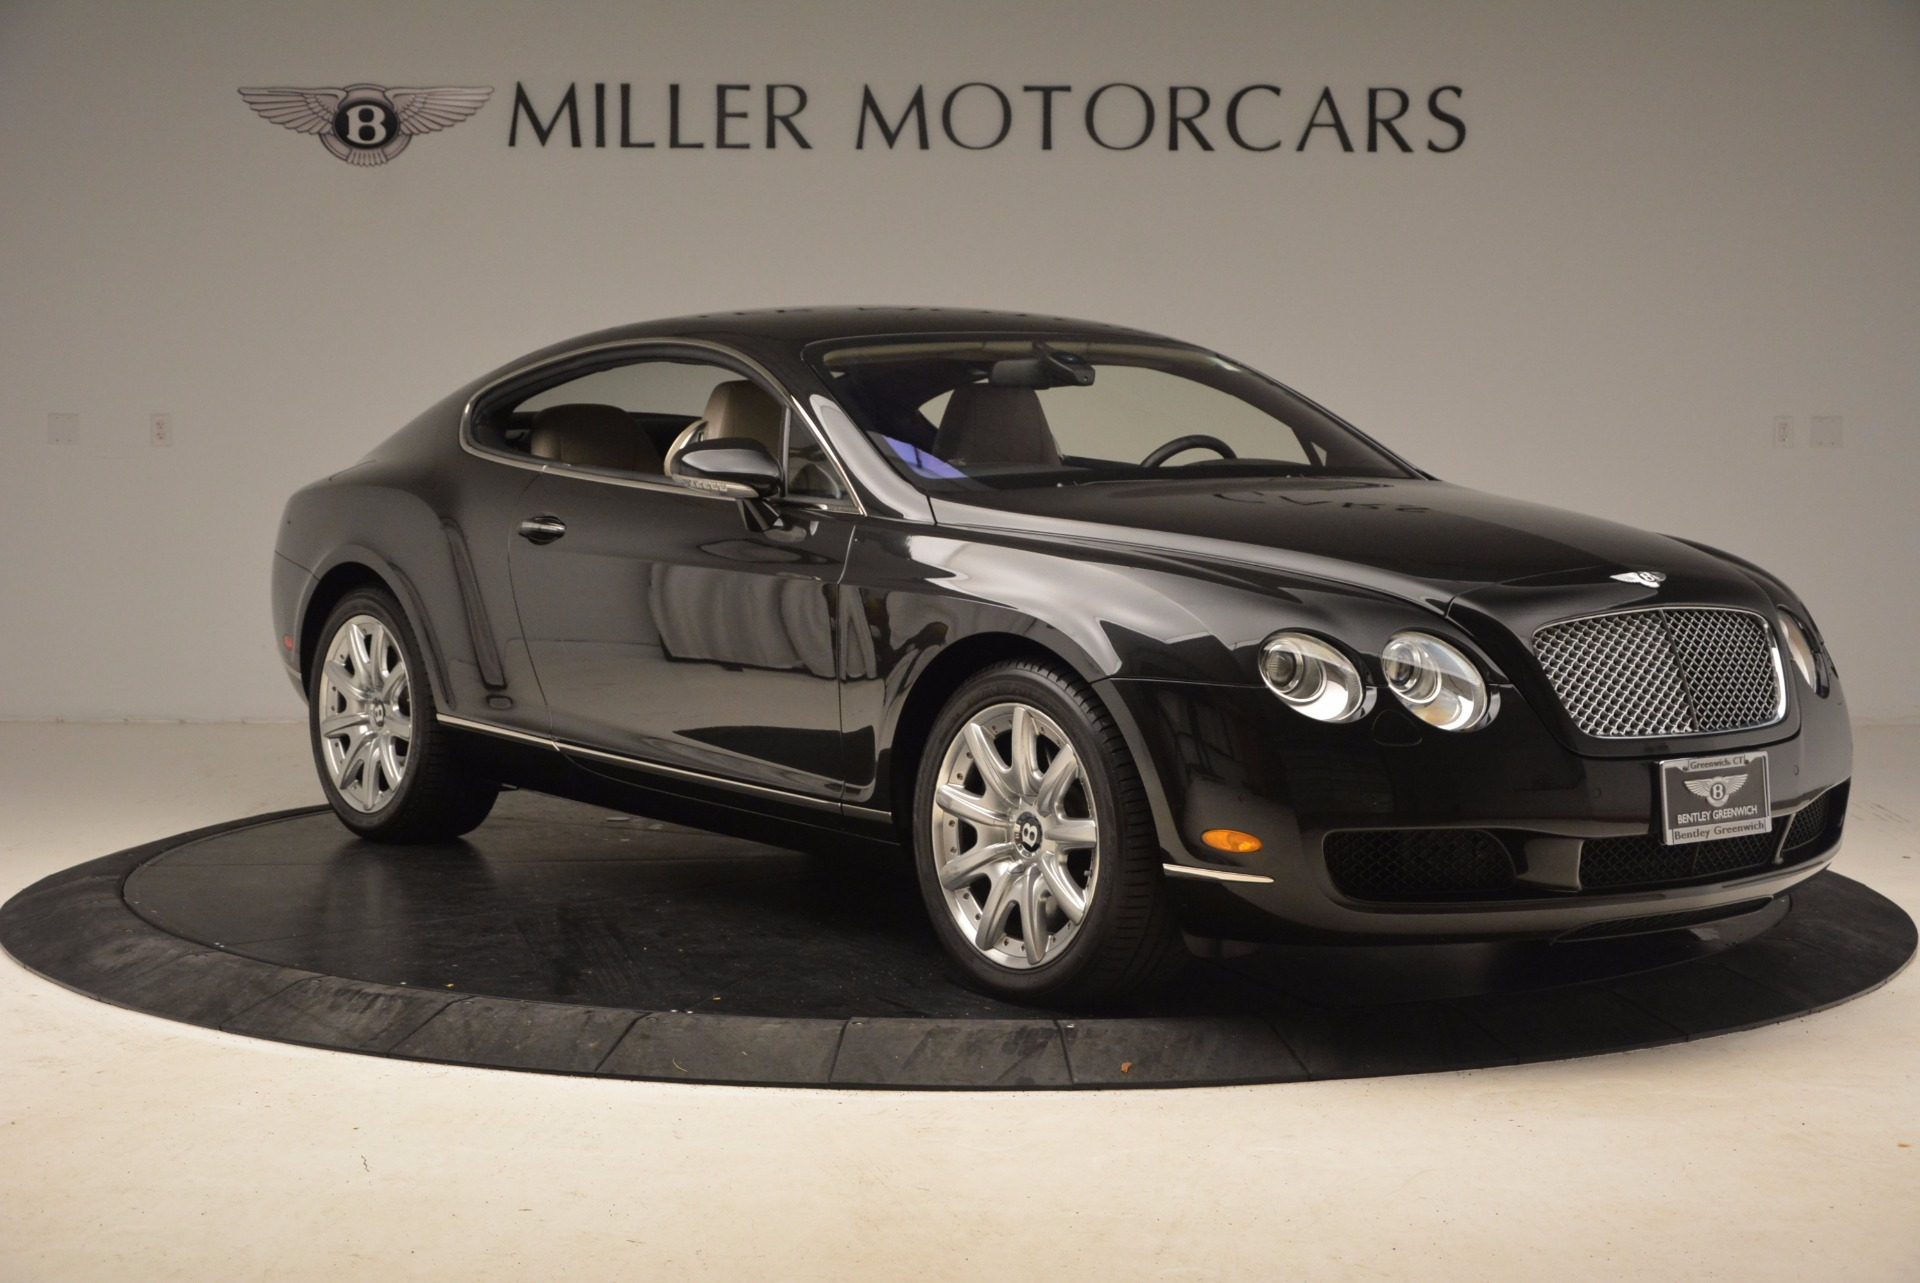 Used 2005 Bentley Continental GT W12 For Sale In Greenwich, CT. Alfa Romeo of Greenwich, 7290 1677_p11